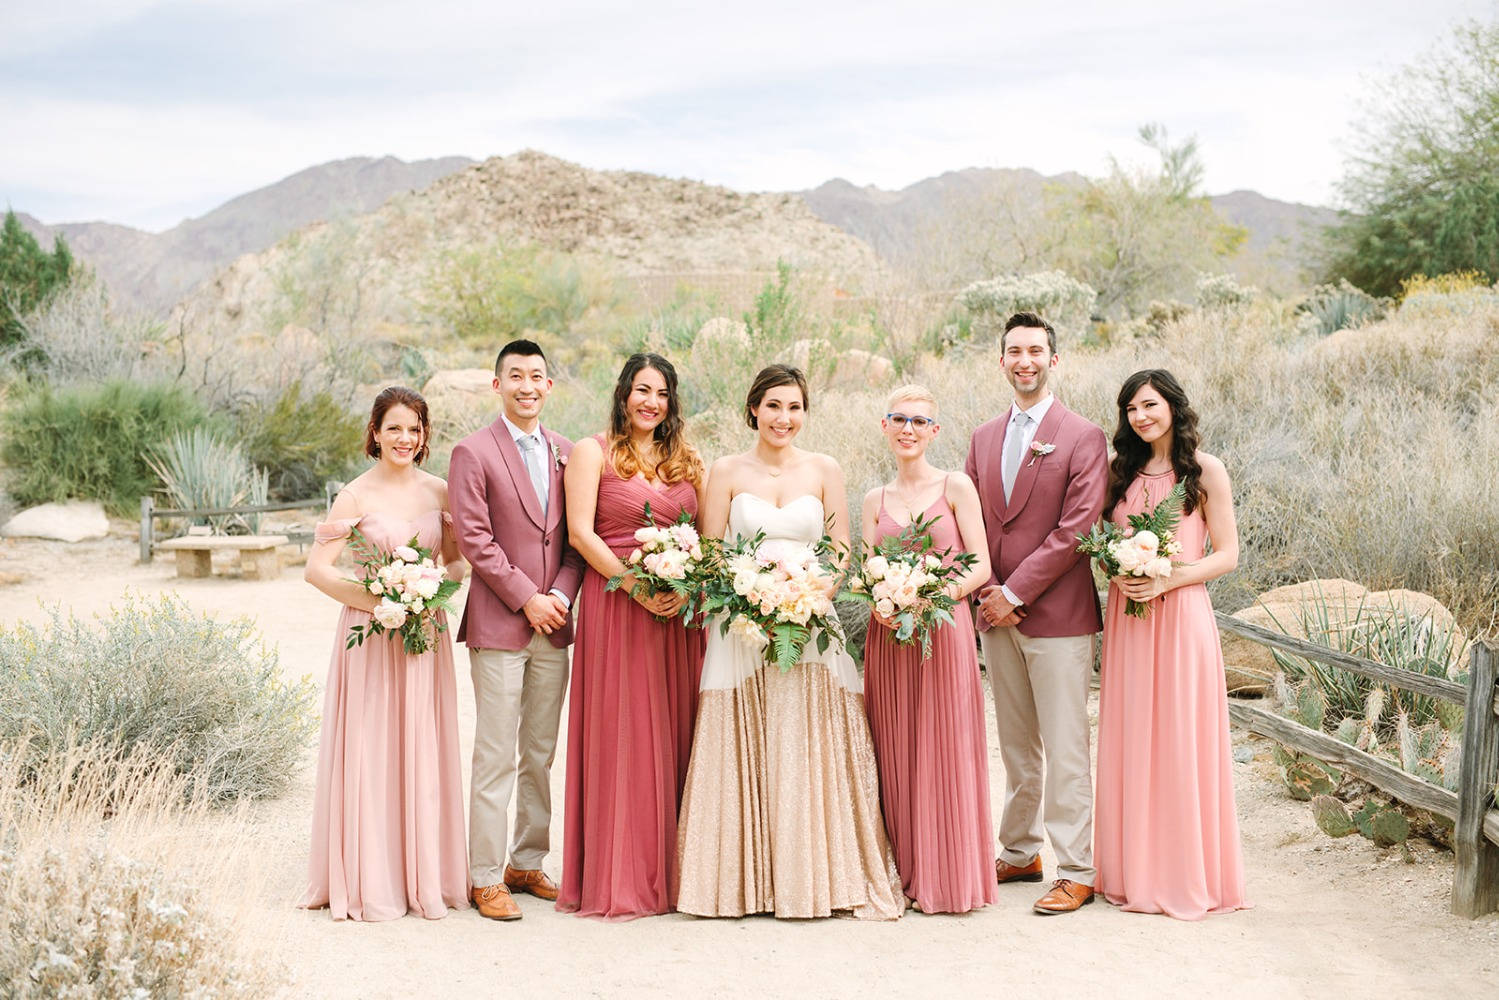 Mismatched bridesmaid/men dresses